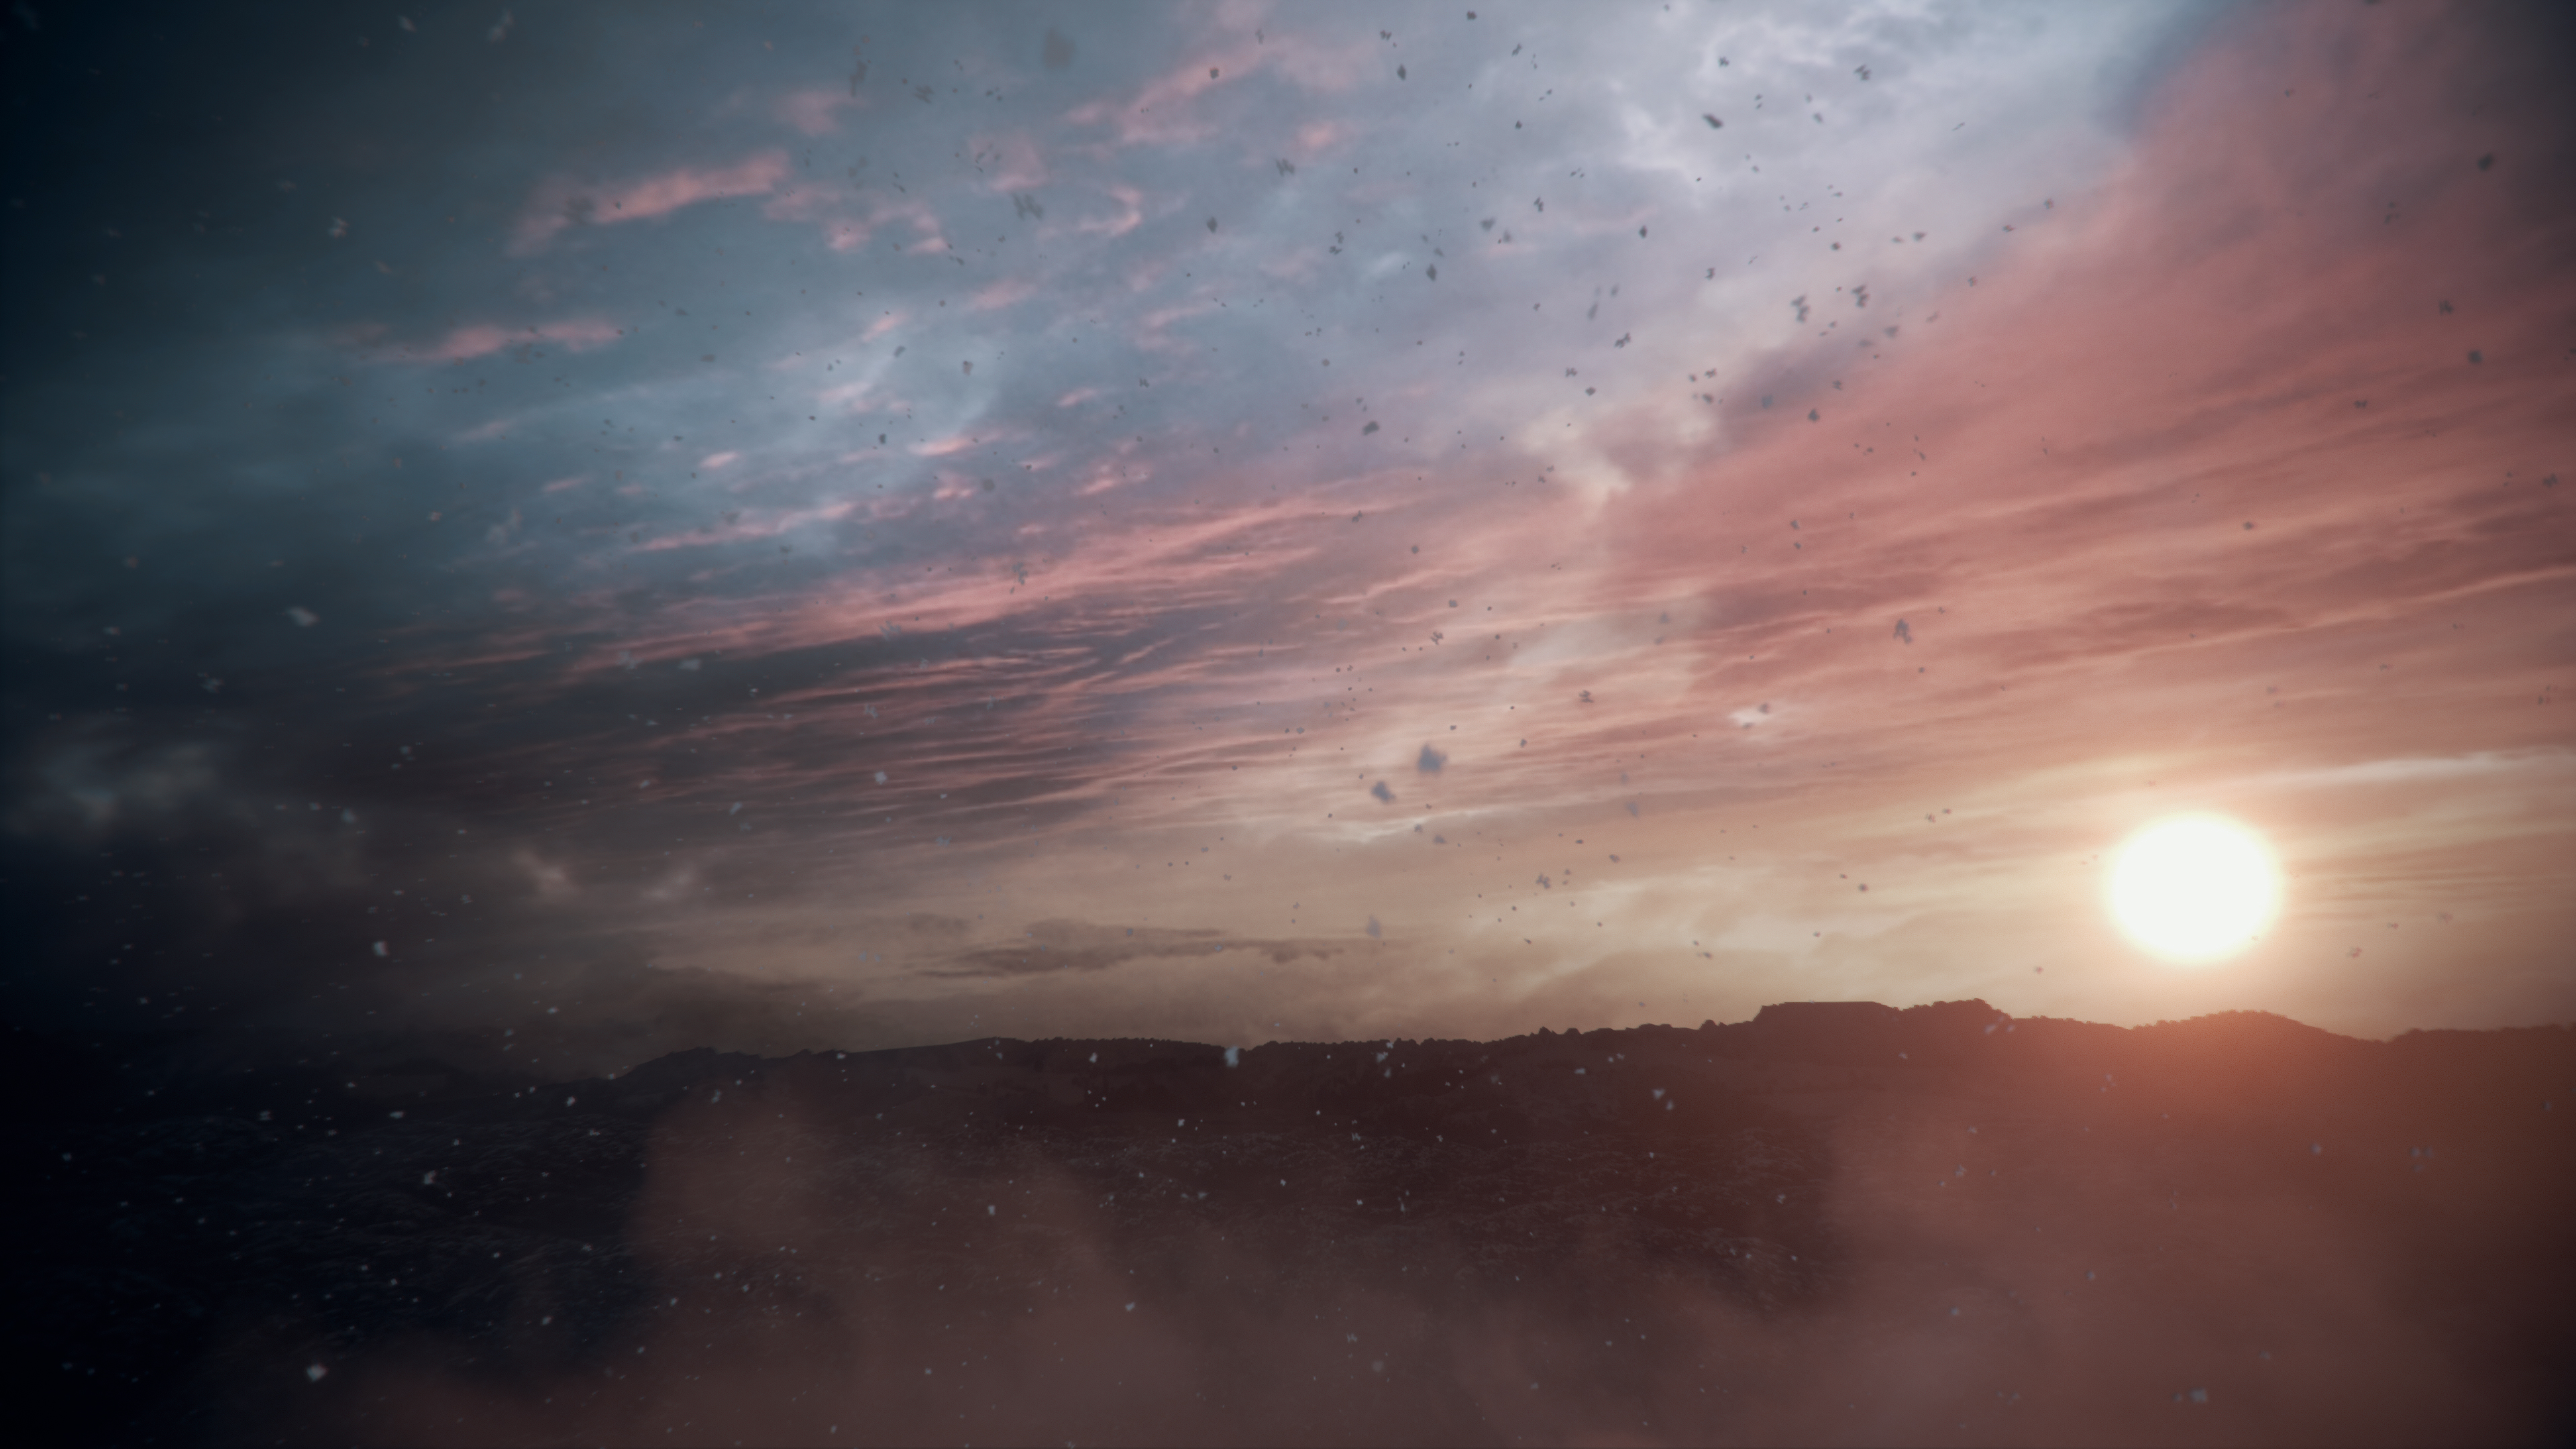 General 3840x2160 A Plague Tale Innocence Sun sunset video games sky